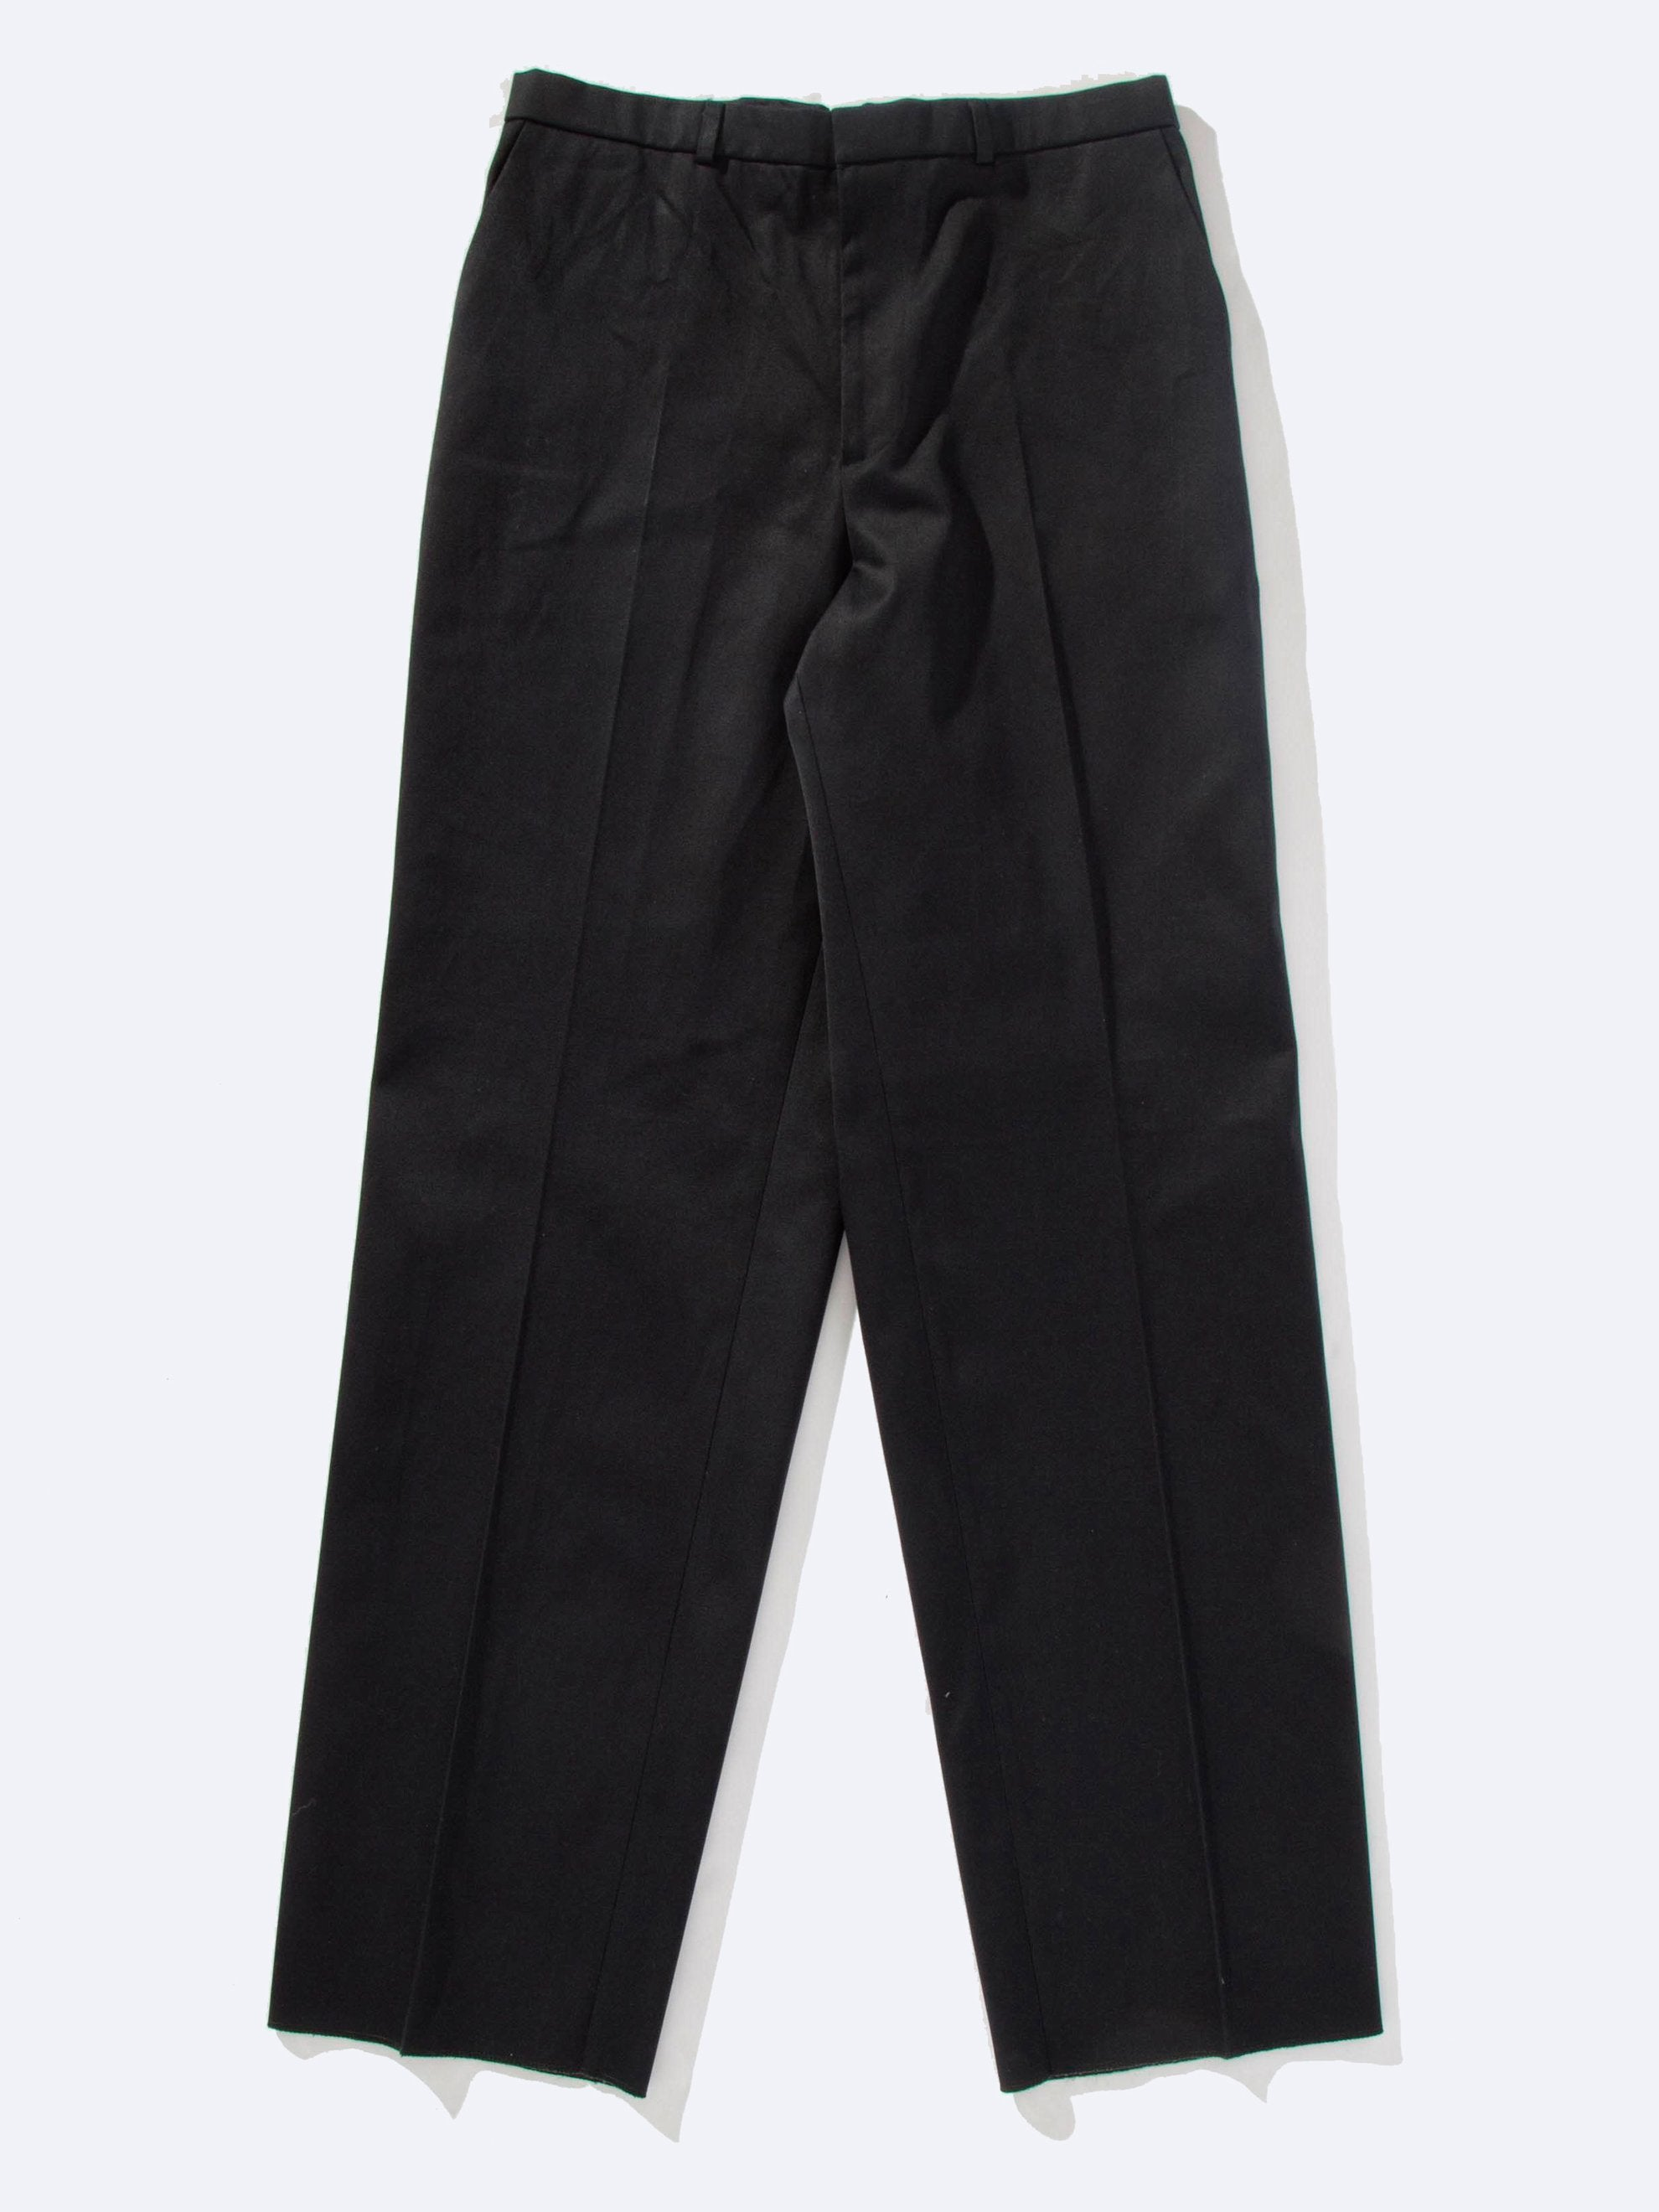 Navy Wide Leg Pant (Tape and Pleats) 1